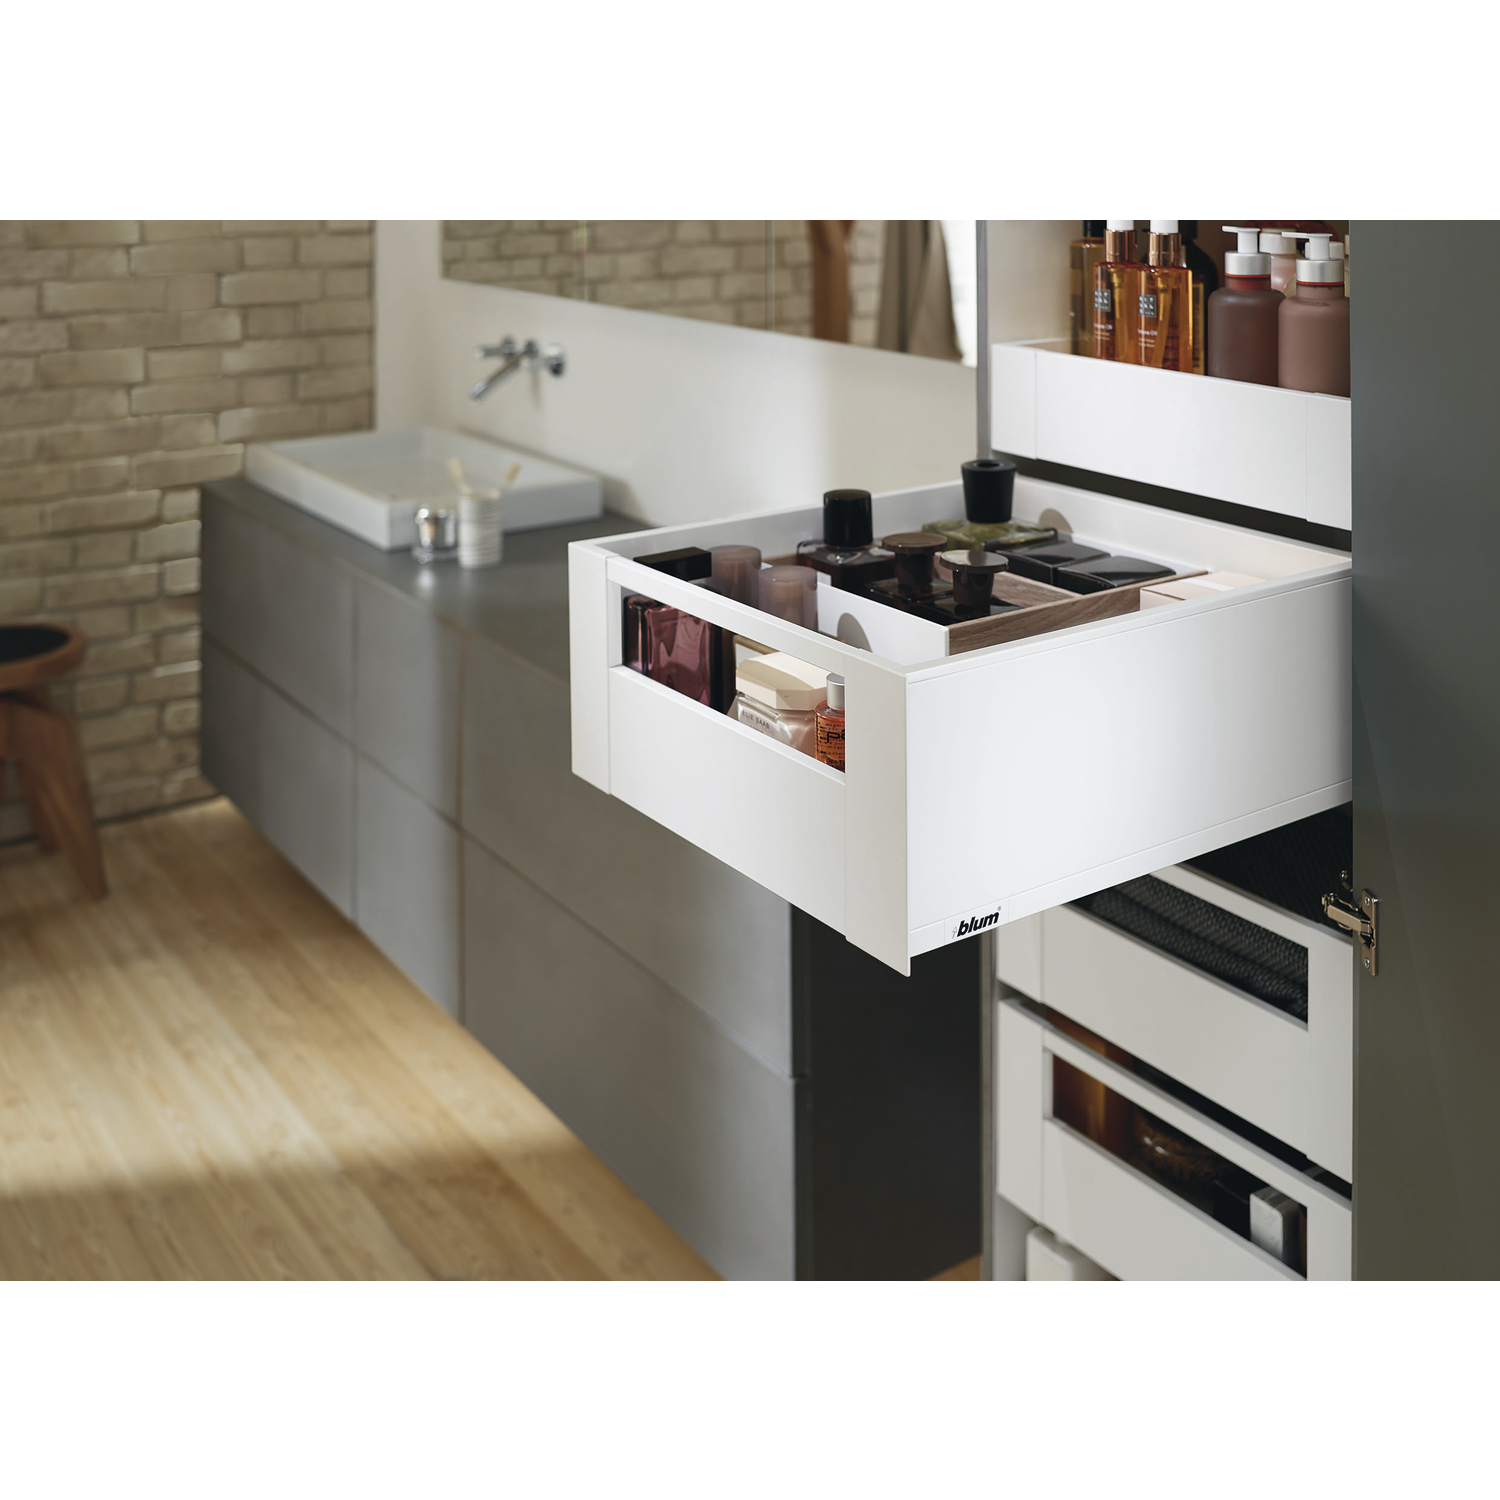 blum space tower legrabox pure mit reling nl500 kb600 seidenwei. Black Bedroom Furniture Sets. Home Design Ideas